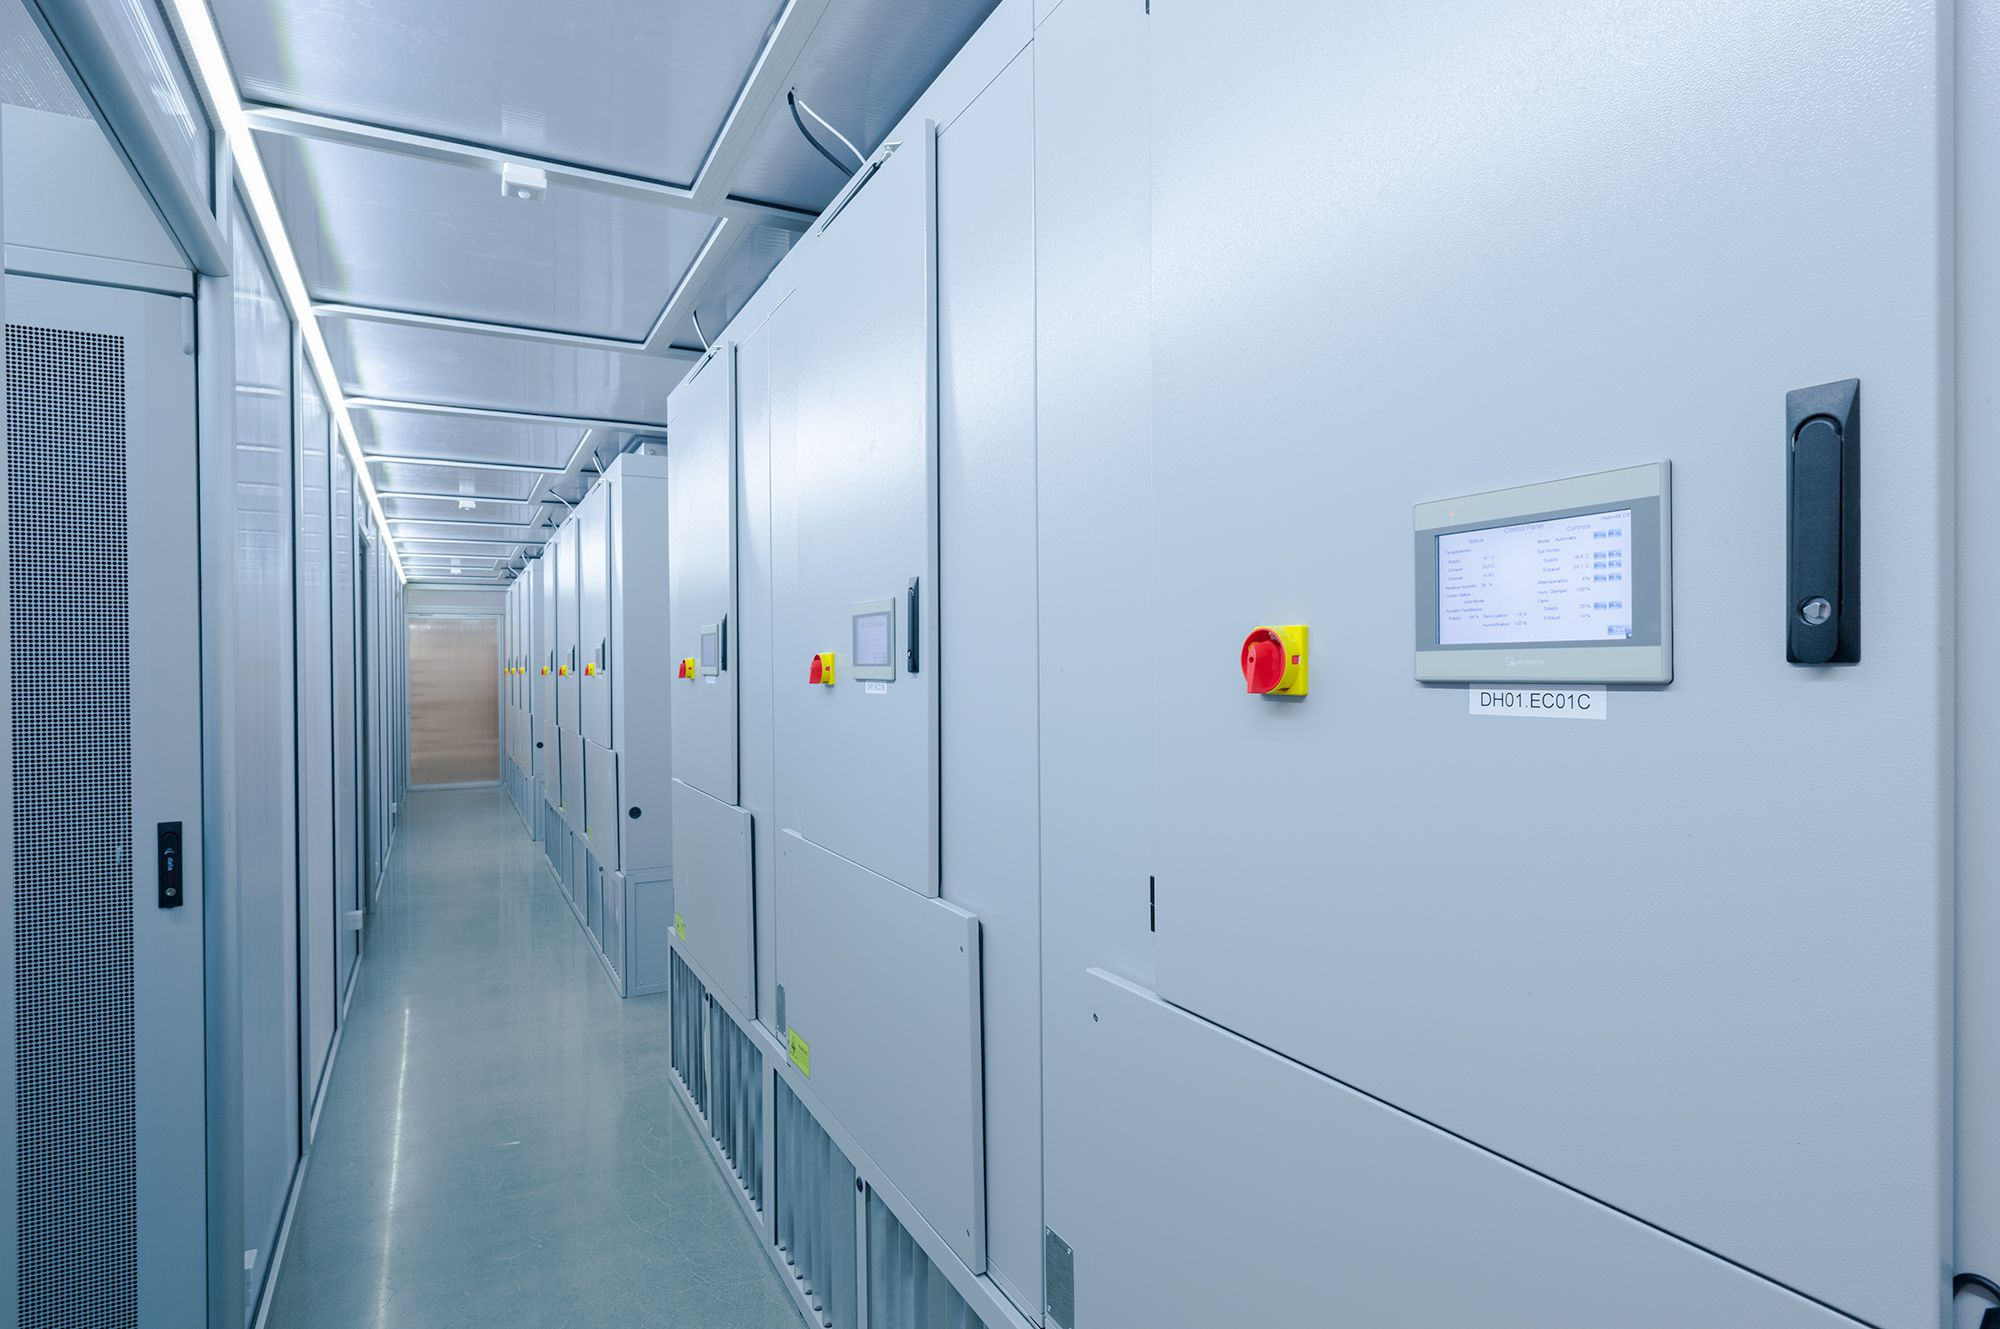 CloudCooler ECT 10800 evaporative cooling units. Installed in a Nordic-based data centre for increased energy efficiency.